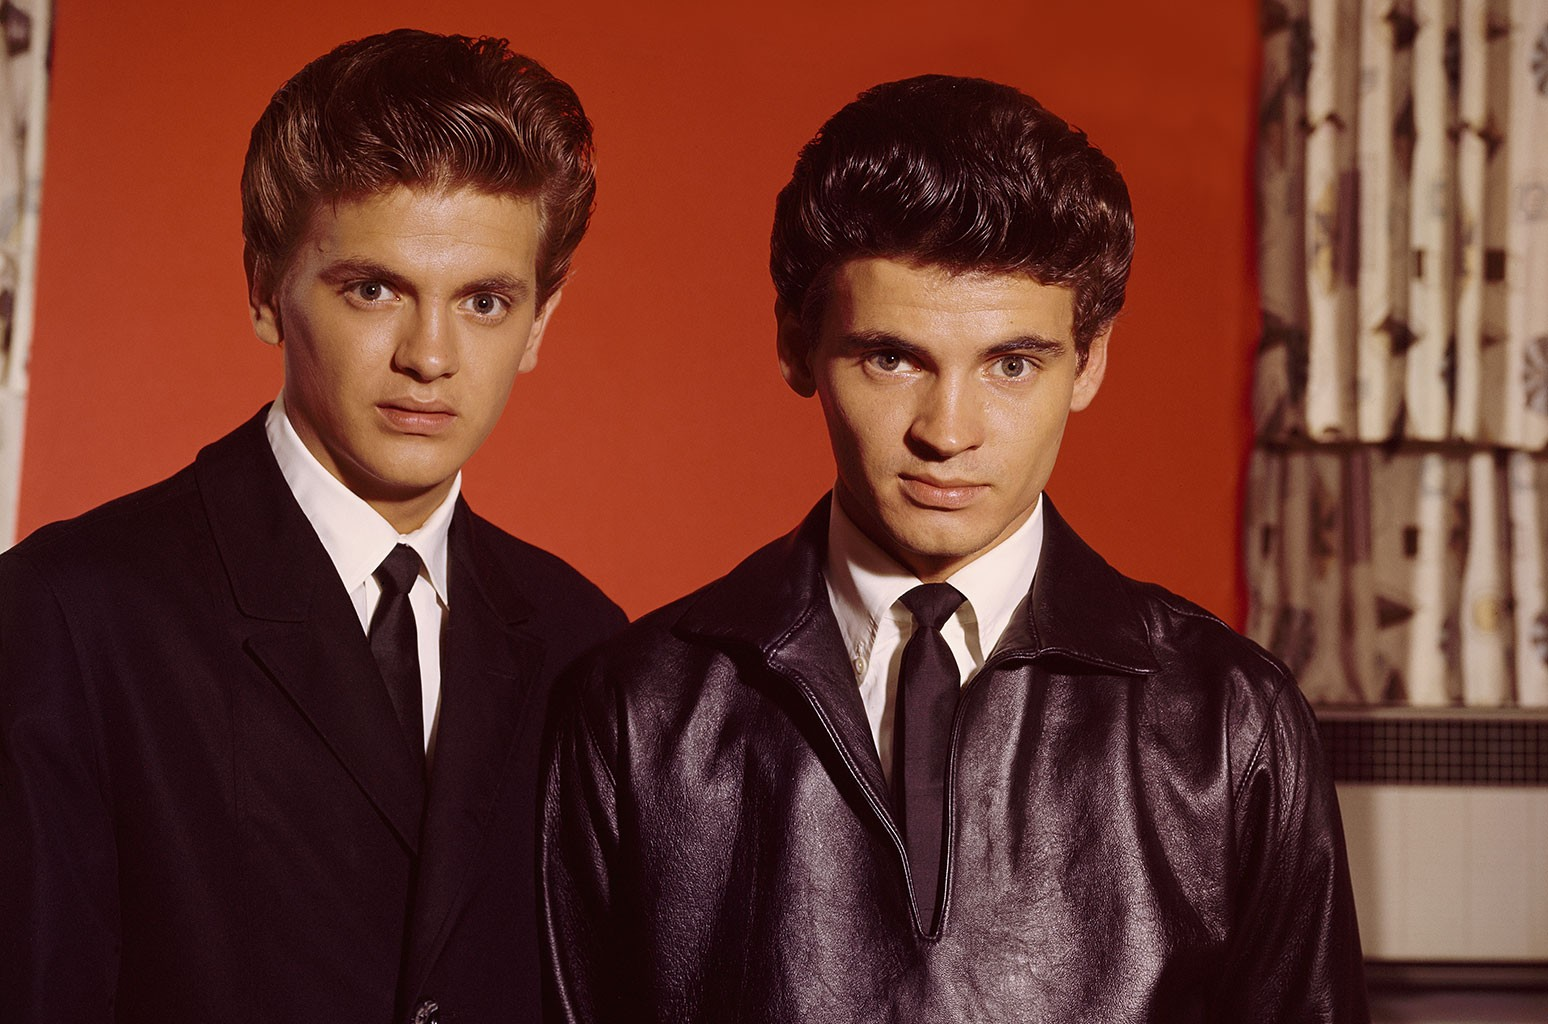 The-Everly-Brothers-billboard-1548-1620319984-compressed.jpg